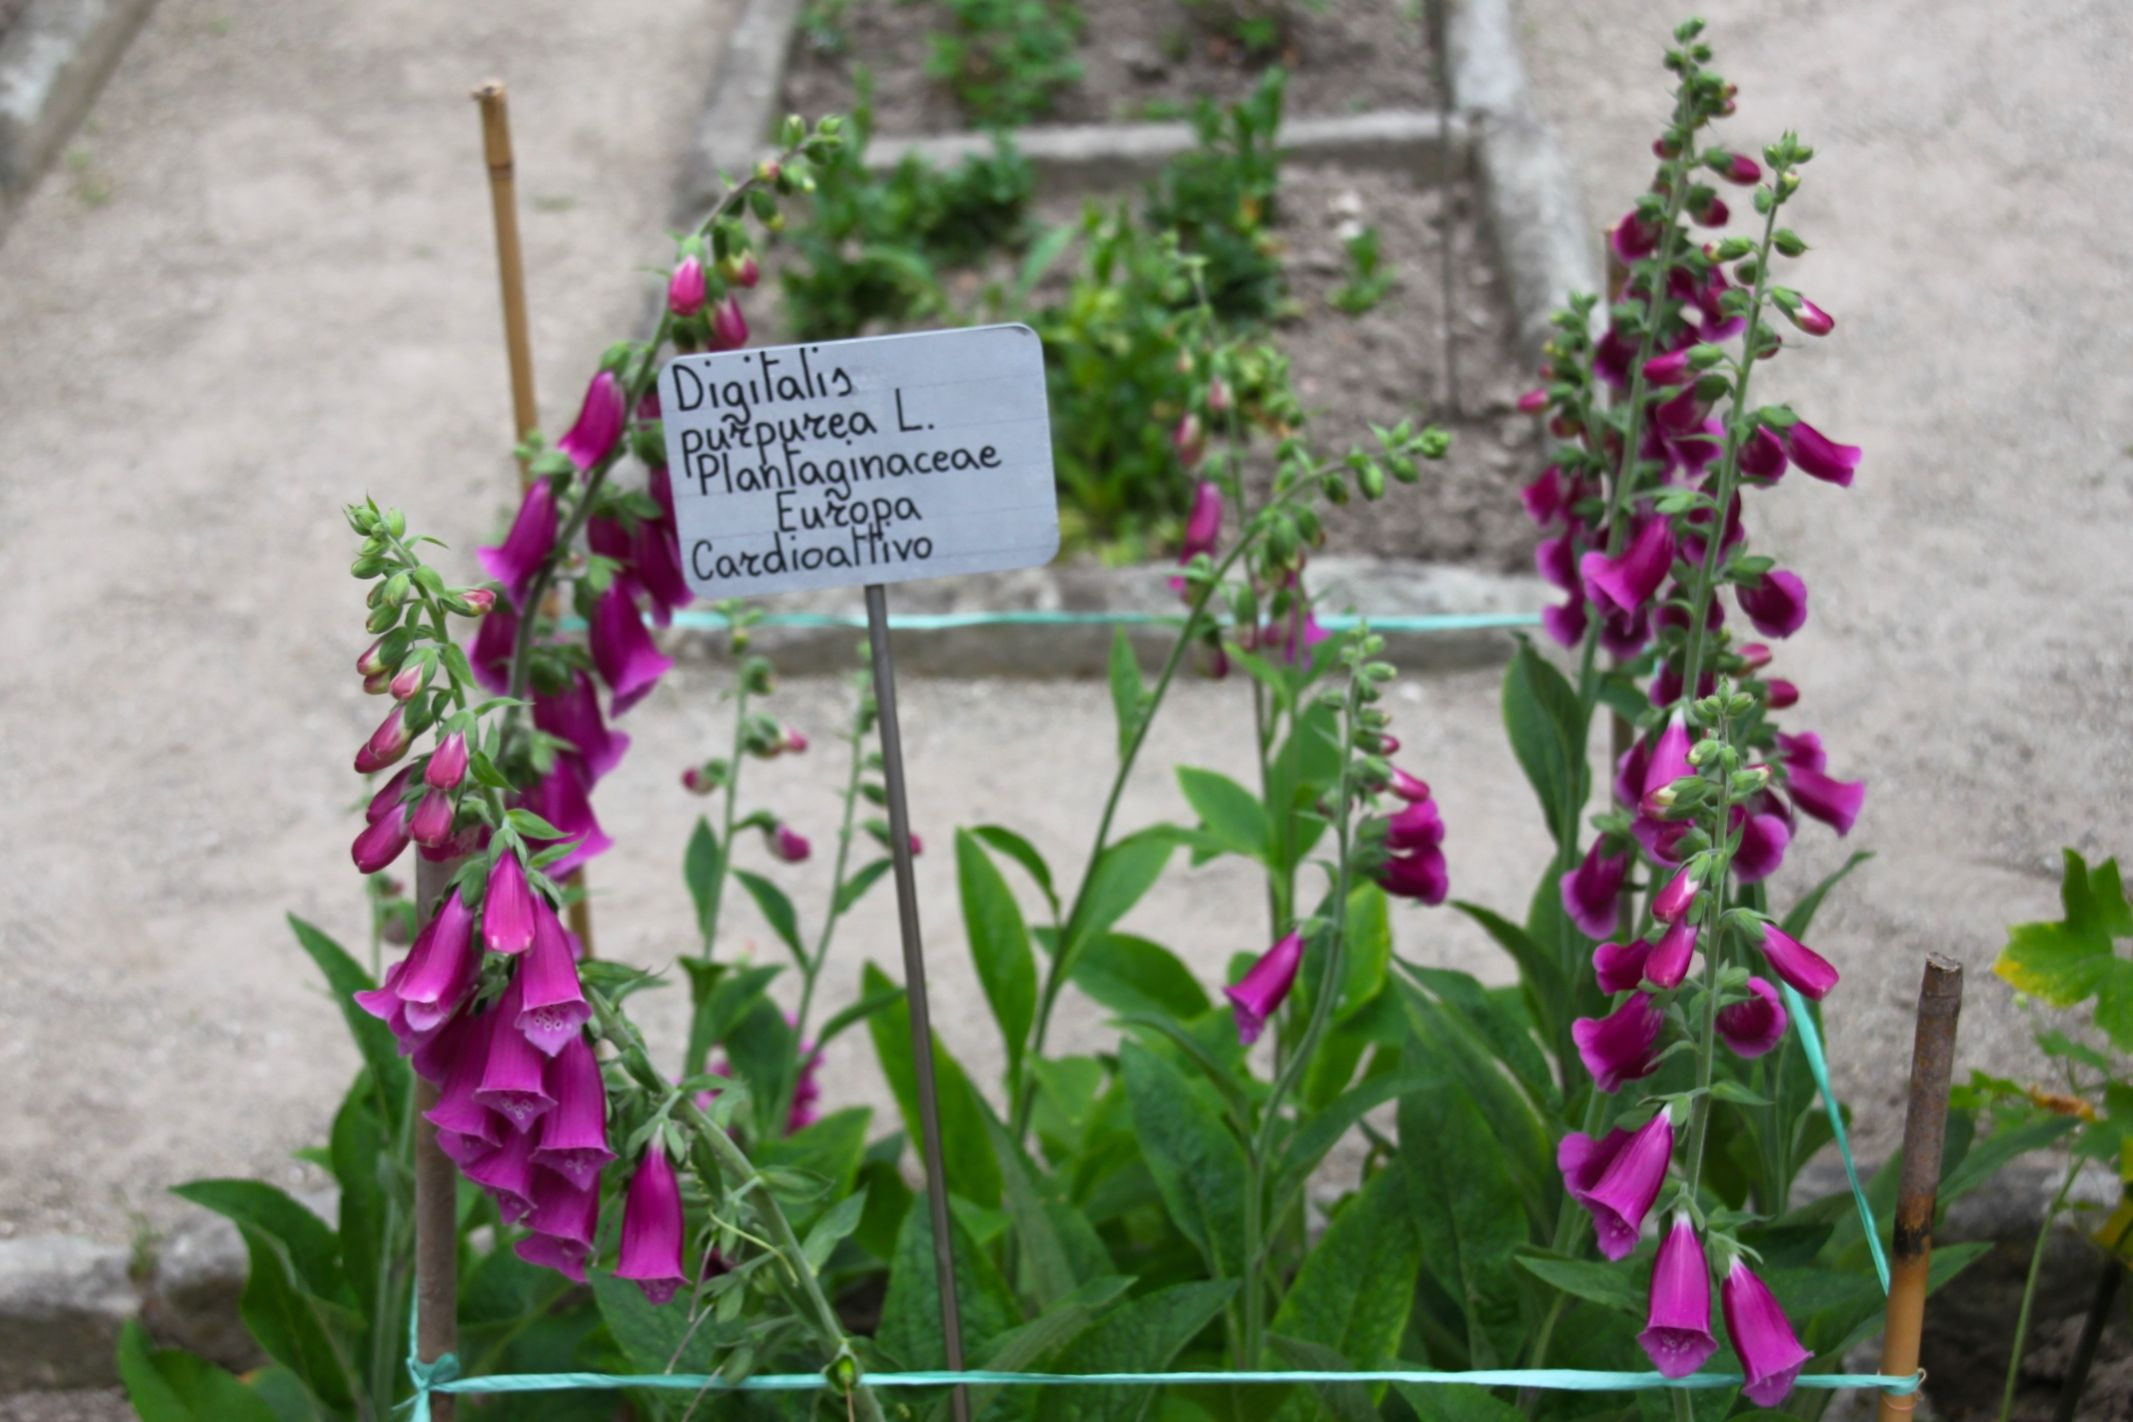 Photo of digitalis plant at the Padua botanic gardens